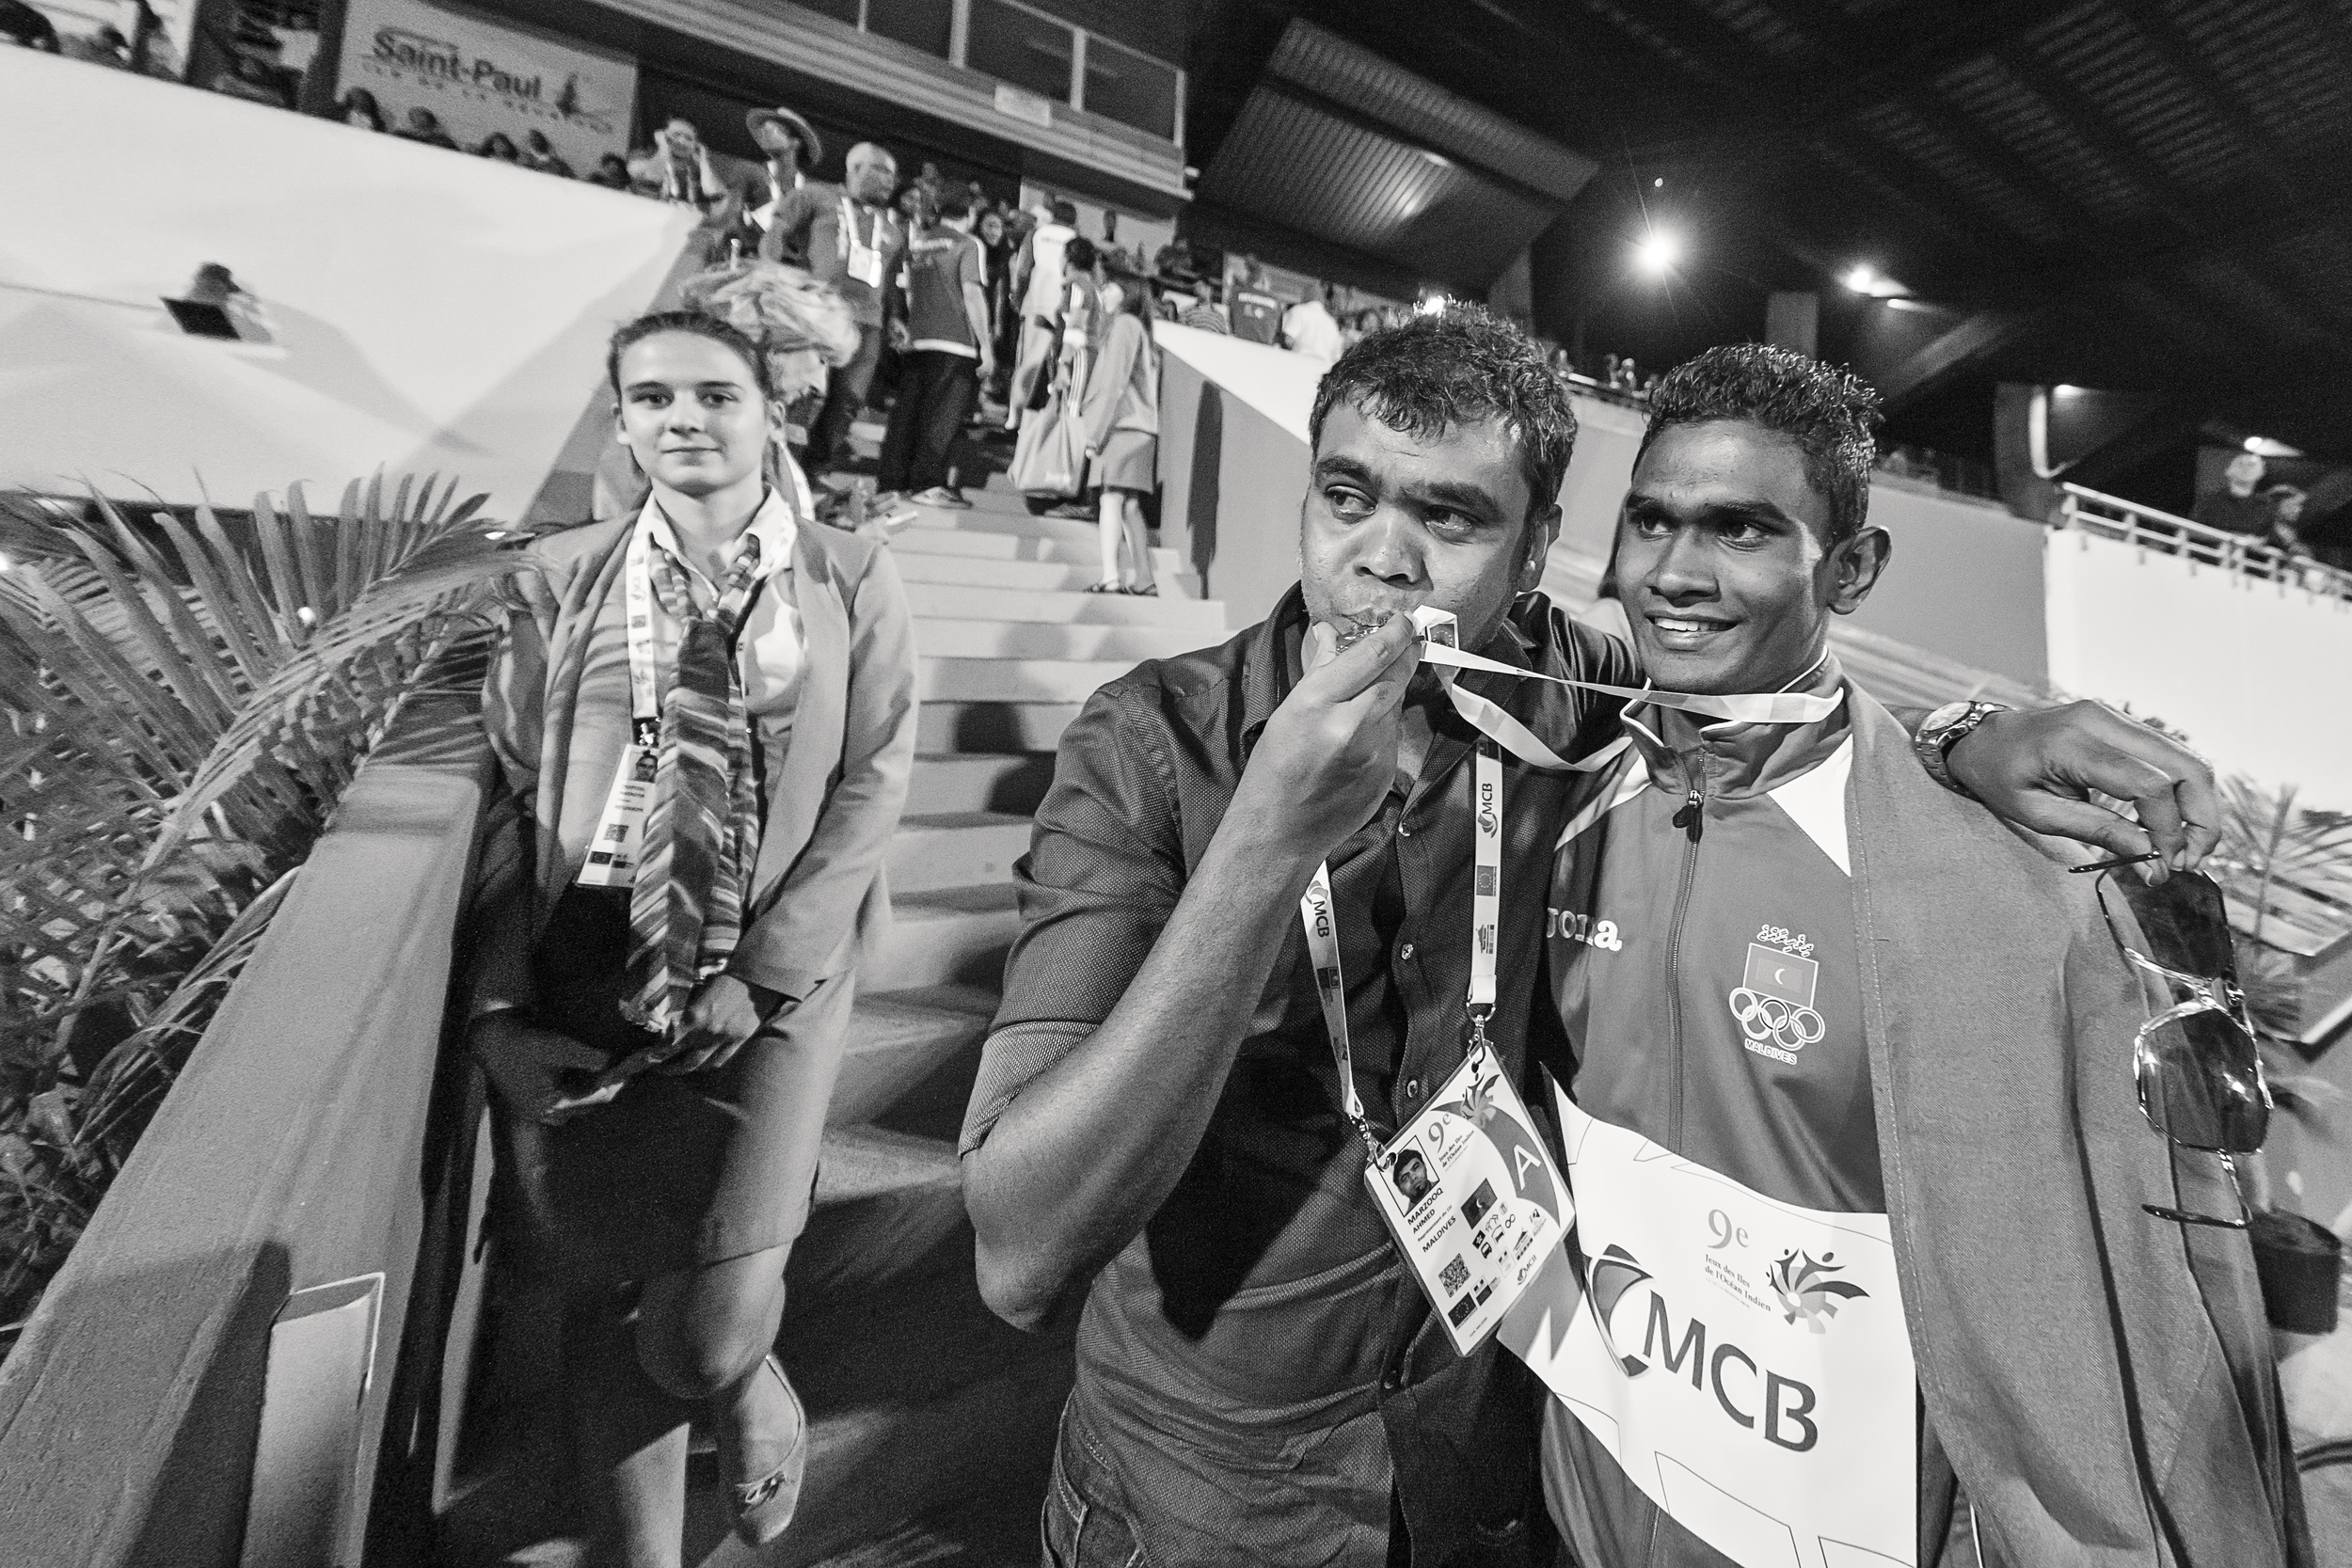 7_MOC General Secretary kissing the Gold Medal - His long invested dream come true.jpg